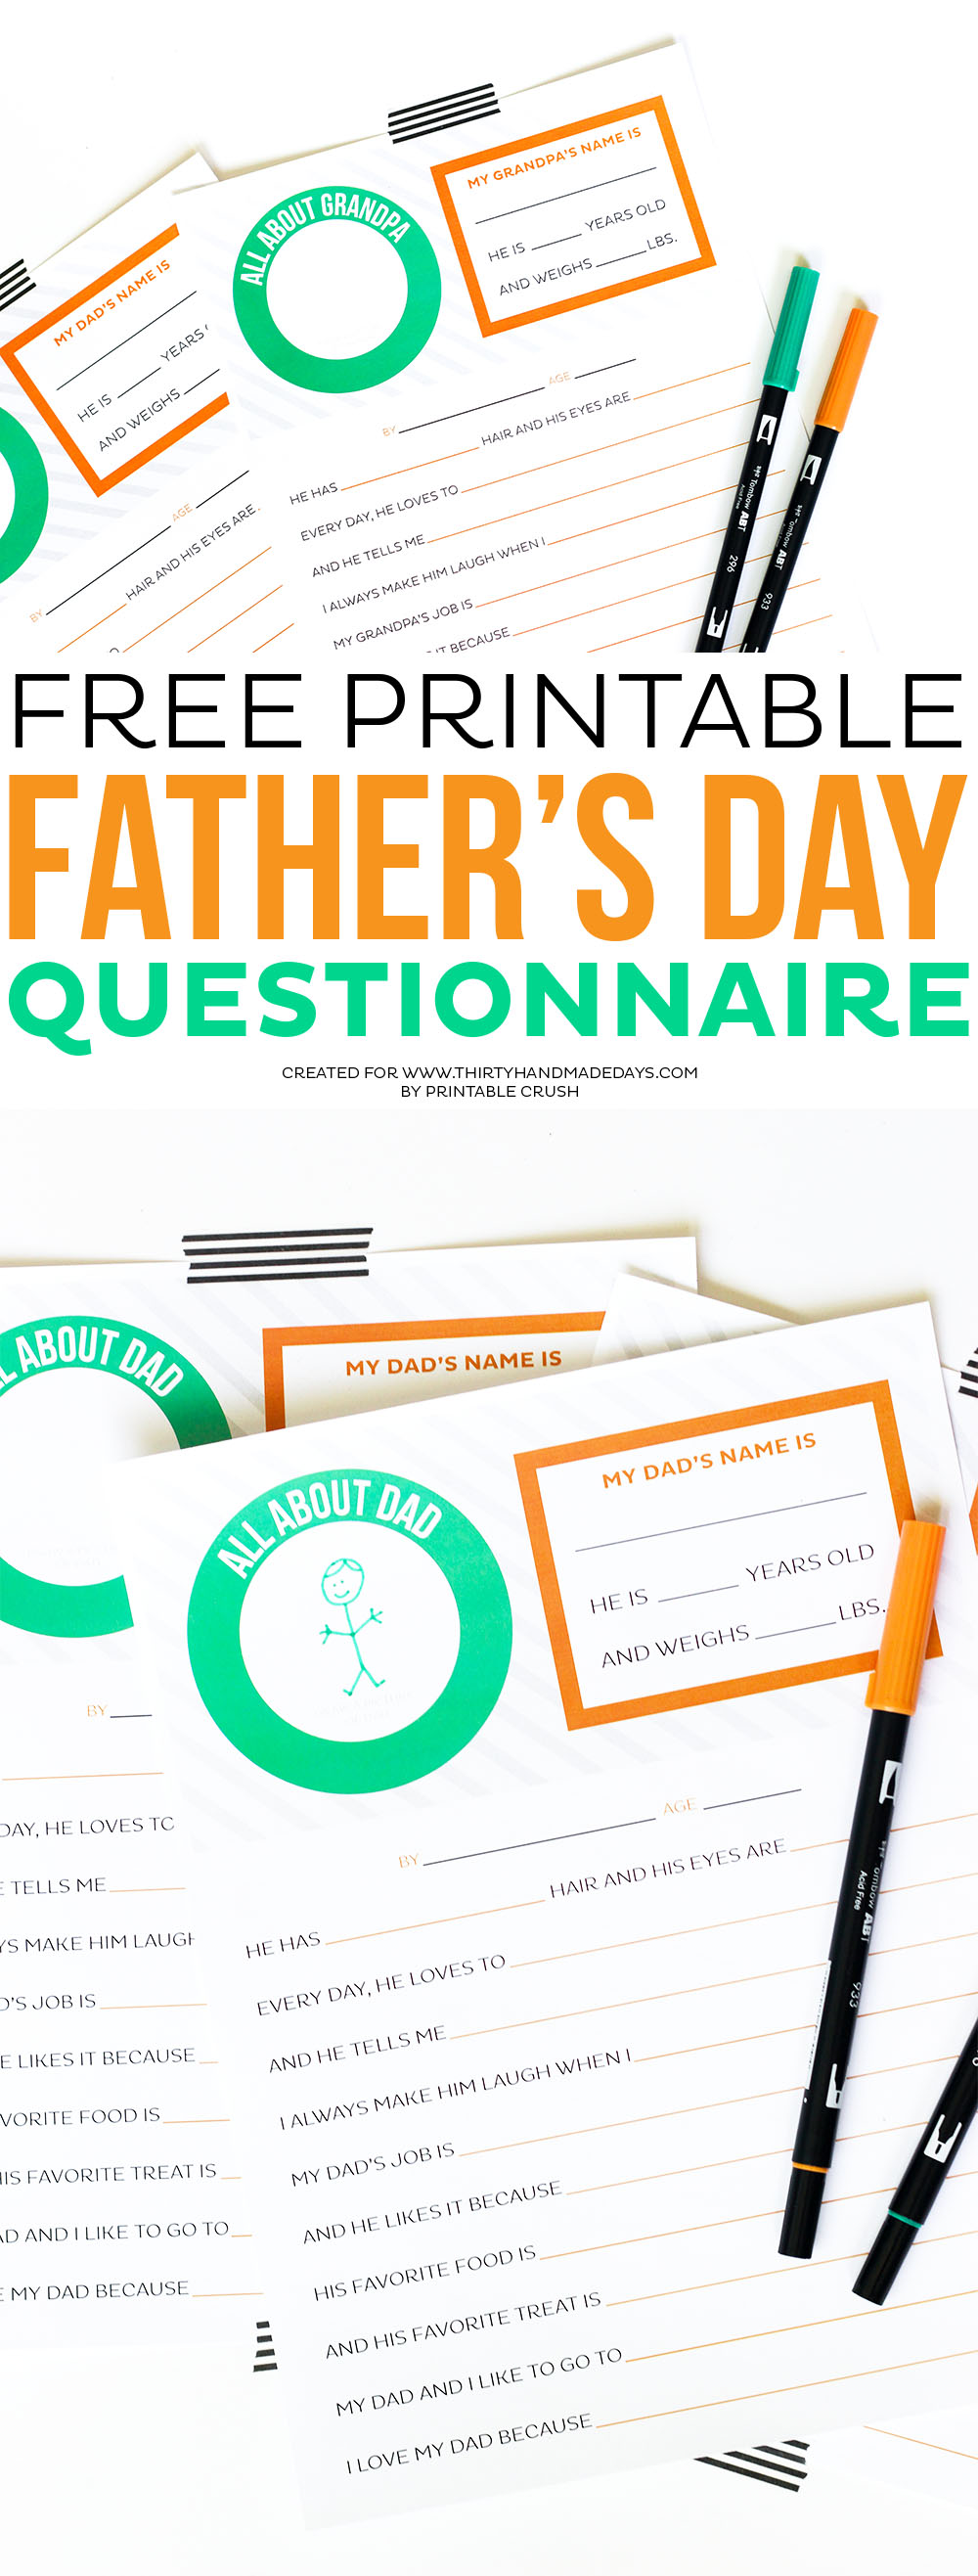 image regarding Dad Questionnaire Printable named Absolutely free Printable Fathers Working day Questionnaire - 30 Homemade Times